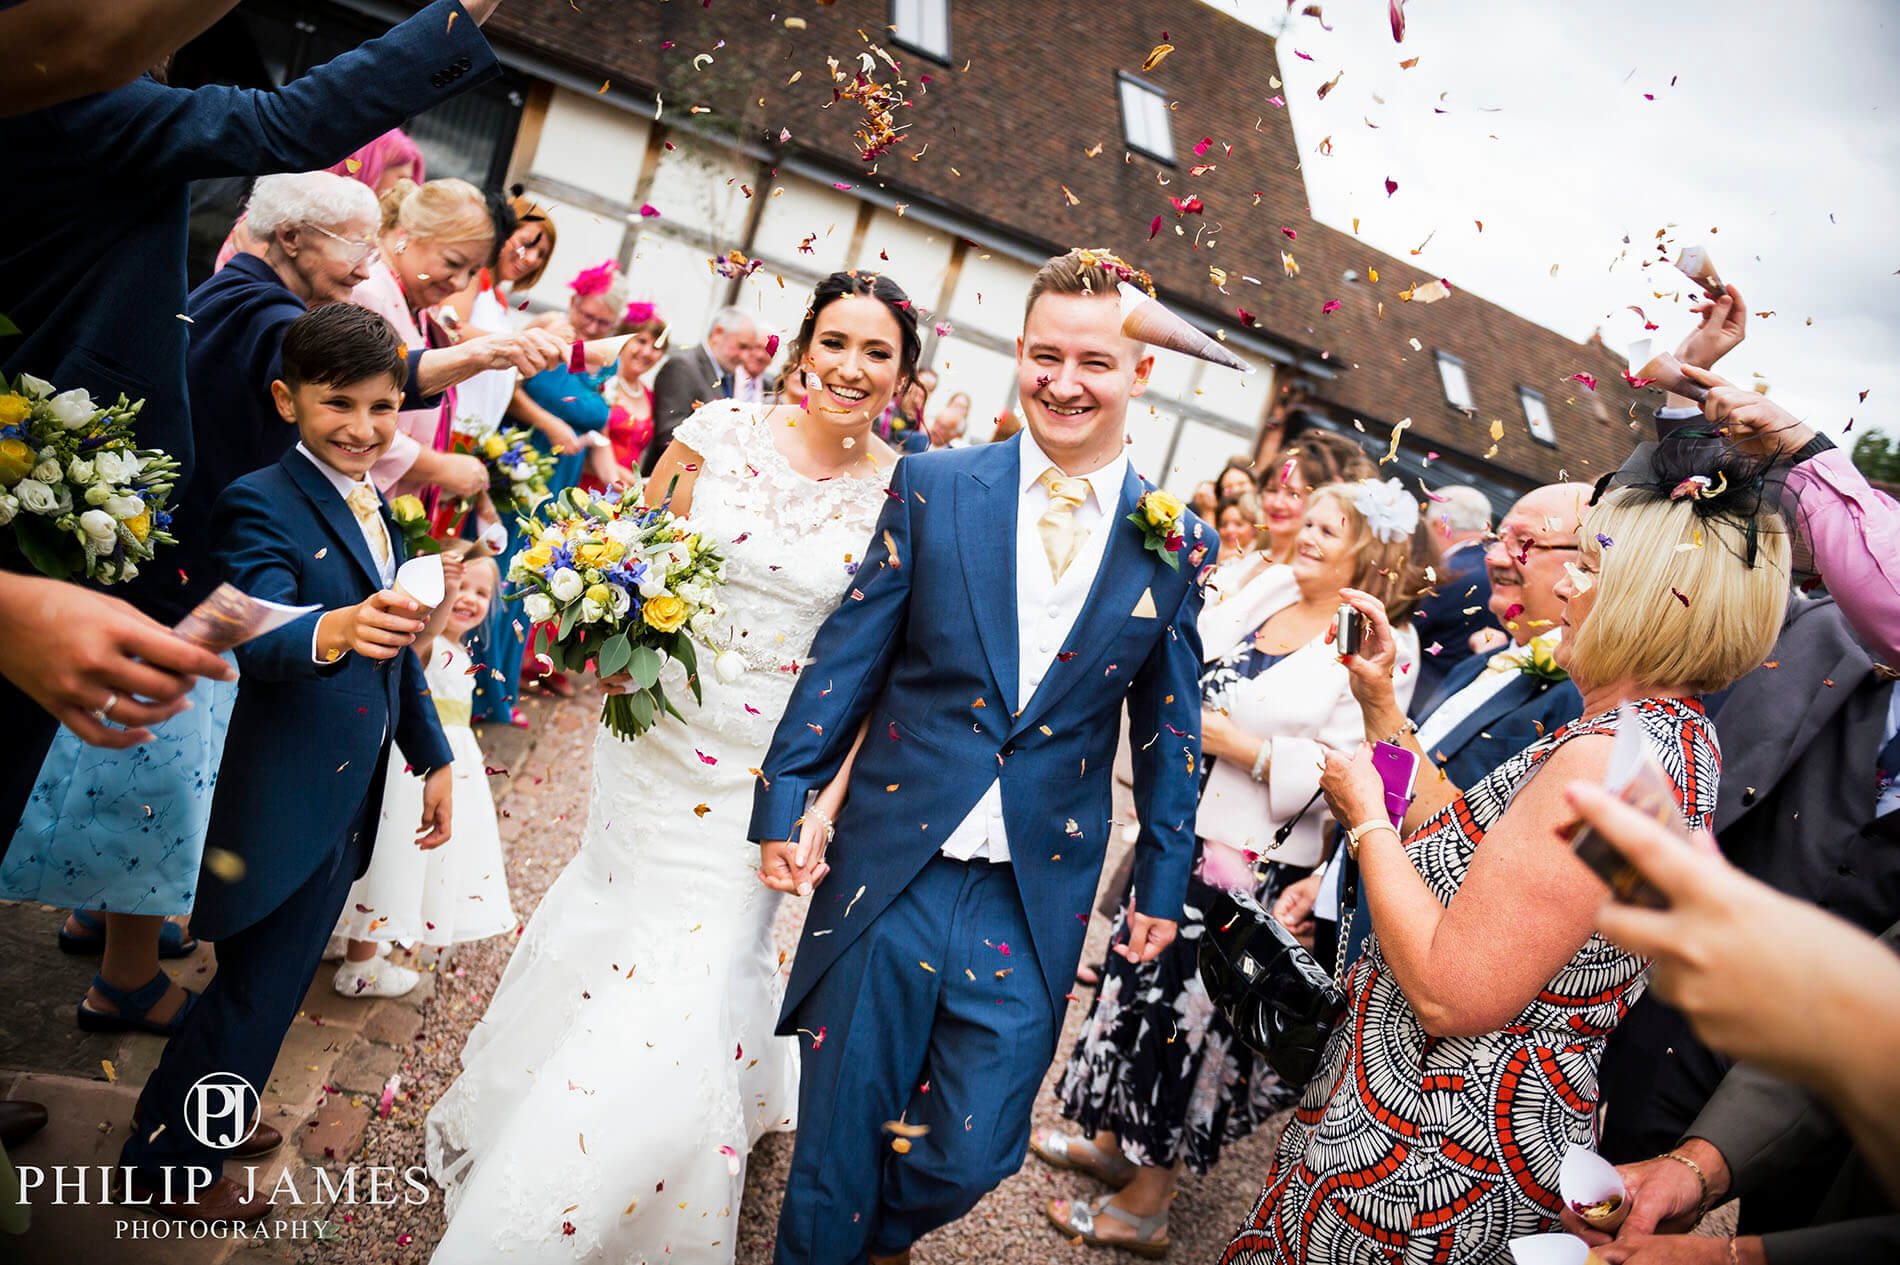 Birmingham Wedding Photographer - Philip James Photography based in Solihull (28 of 68)